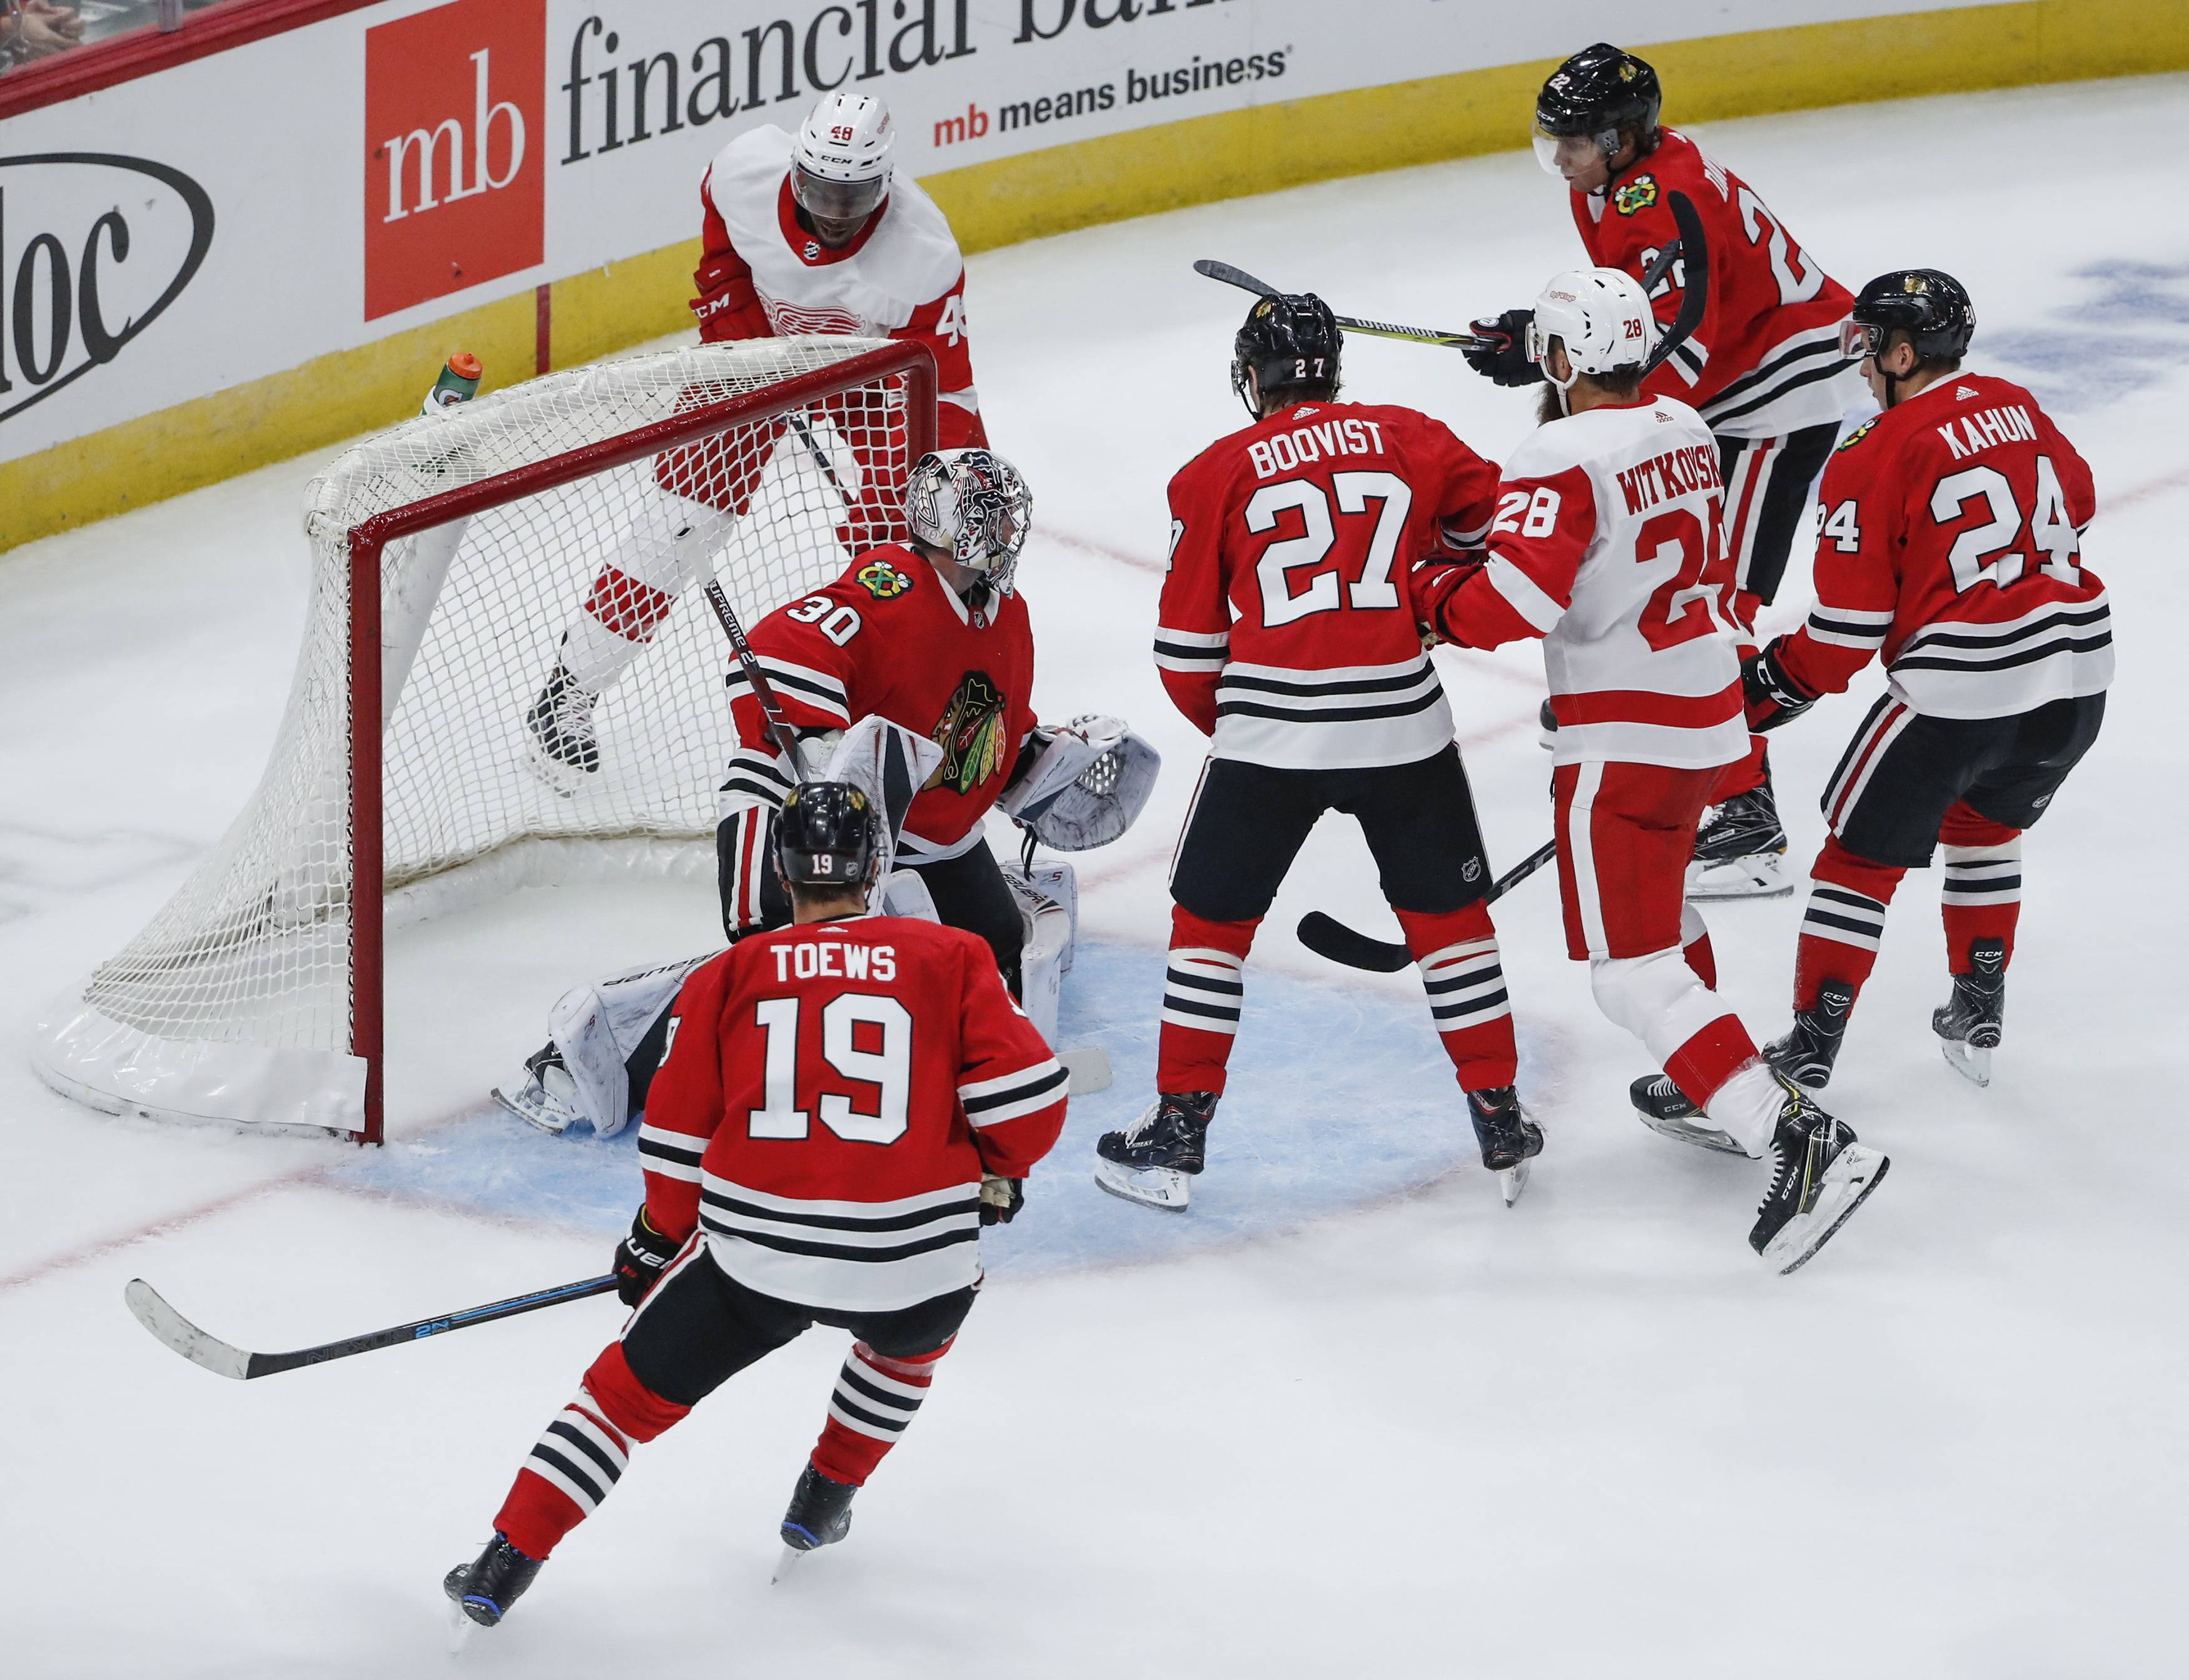 Detroit Red Wings forward Givani Smith (48) scores against Chicago Blackhawks goaltender Cam Ward (30) during the second period of an NHL hockey preseason game Tuesday, Sept. 25, 2018, in Chicago. (AP Photo/Kamil Krzaczynski)